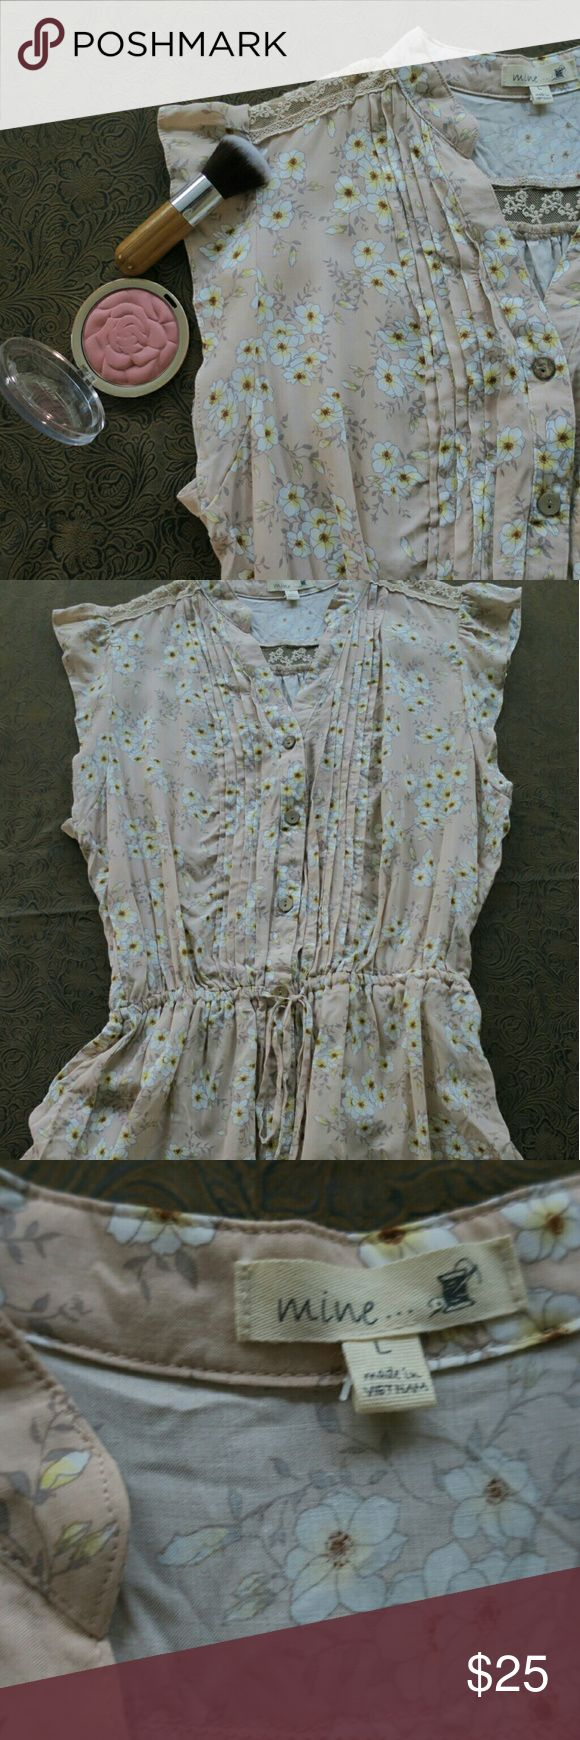 Anthropologie Blouse MINE Brand Blush Color Beautiful Floral Anthropologie MINE brand Tank Blouse. Blush color with white flowers that have pops of yellow. Extra button. NWOT . Lace accents! Anthropologie Tops